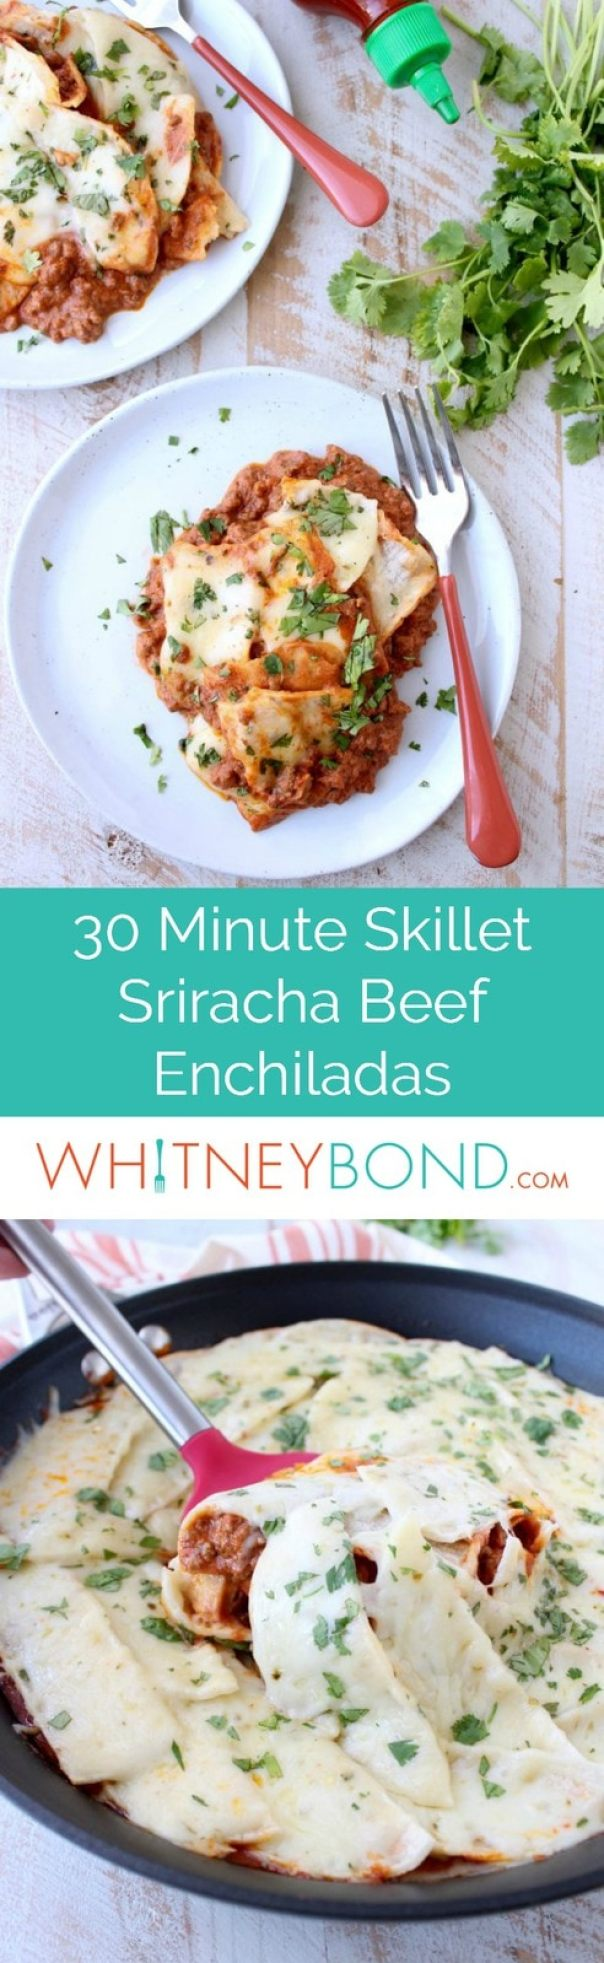 This deconstructed recipe for Beef Enchiladas with creamy Sriracha sauce is made in one skillet in only 30 minutes, perfect for busy weeknight dinners!